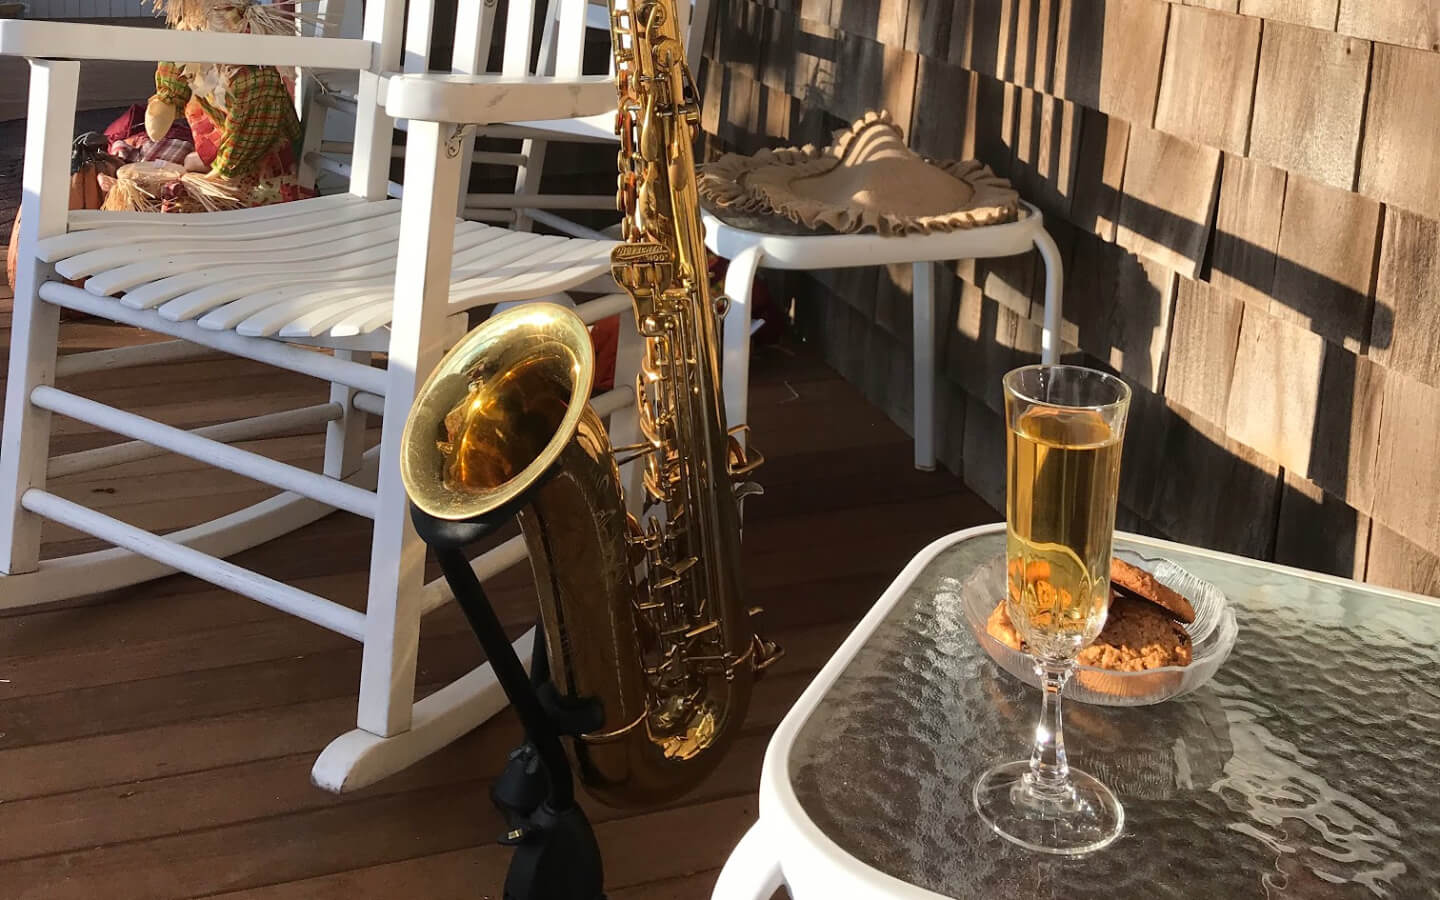 Saxophone on the porch